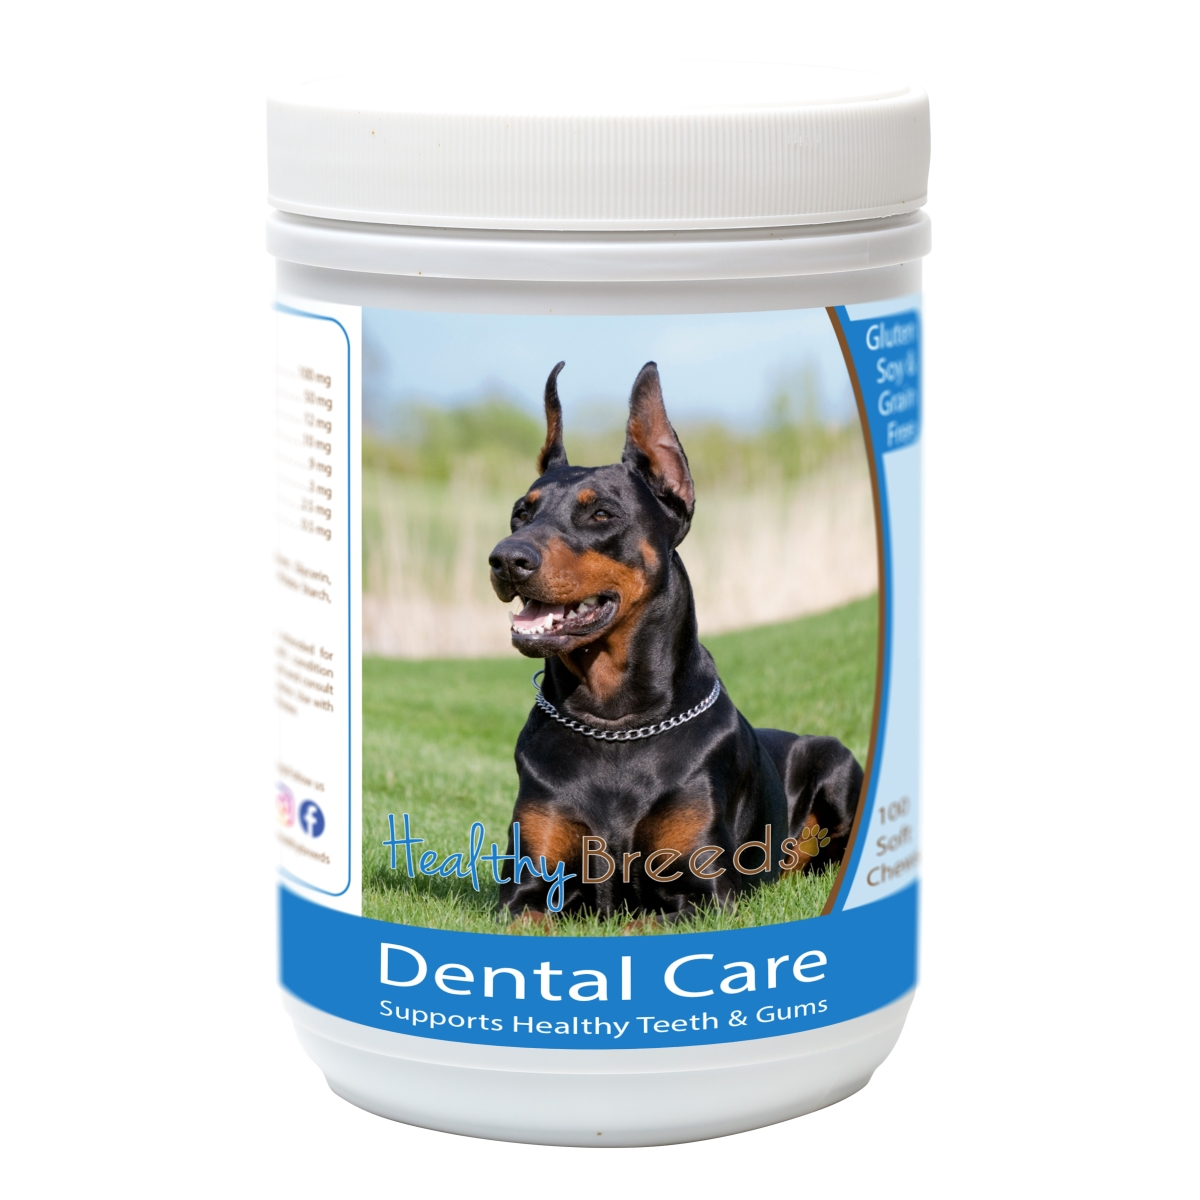 Healthy Breeds 840235162919 Doberman Pinscher Breath Care Soft Chews for Dogs - 60 Count